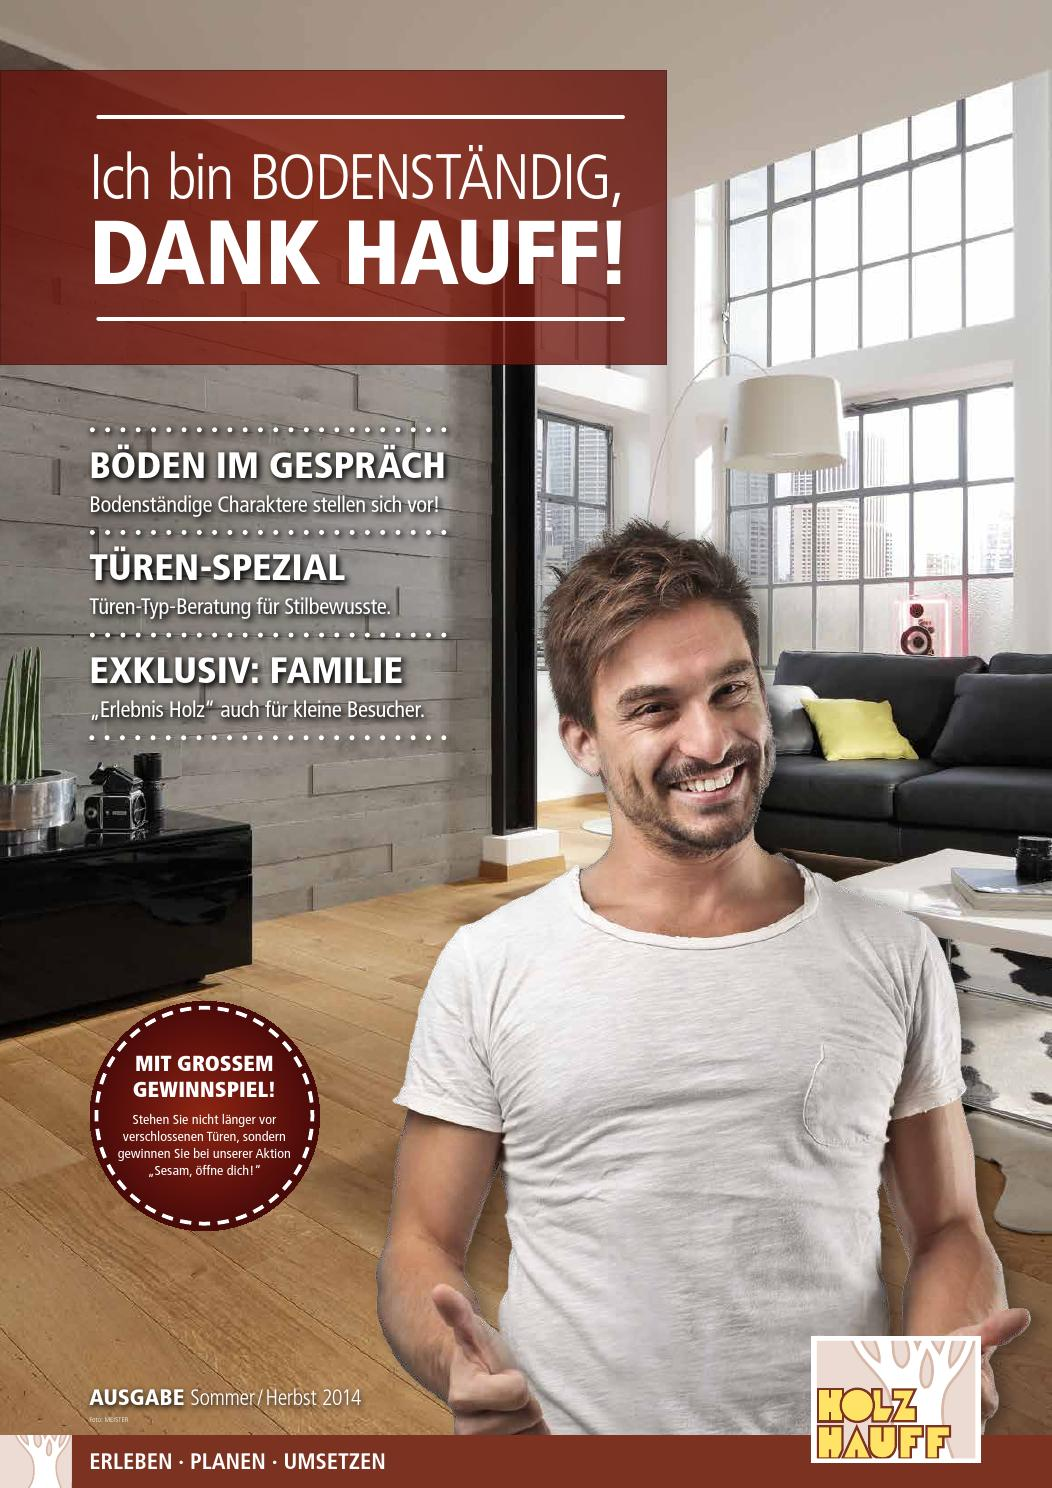 holz hauff beilage sommer herbst 2014 by opus marketing gmbh issuu. Black Bedroom Furniture Sets. Home Design Ideas